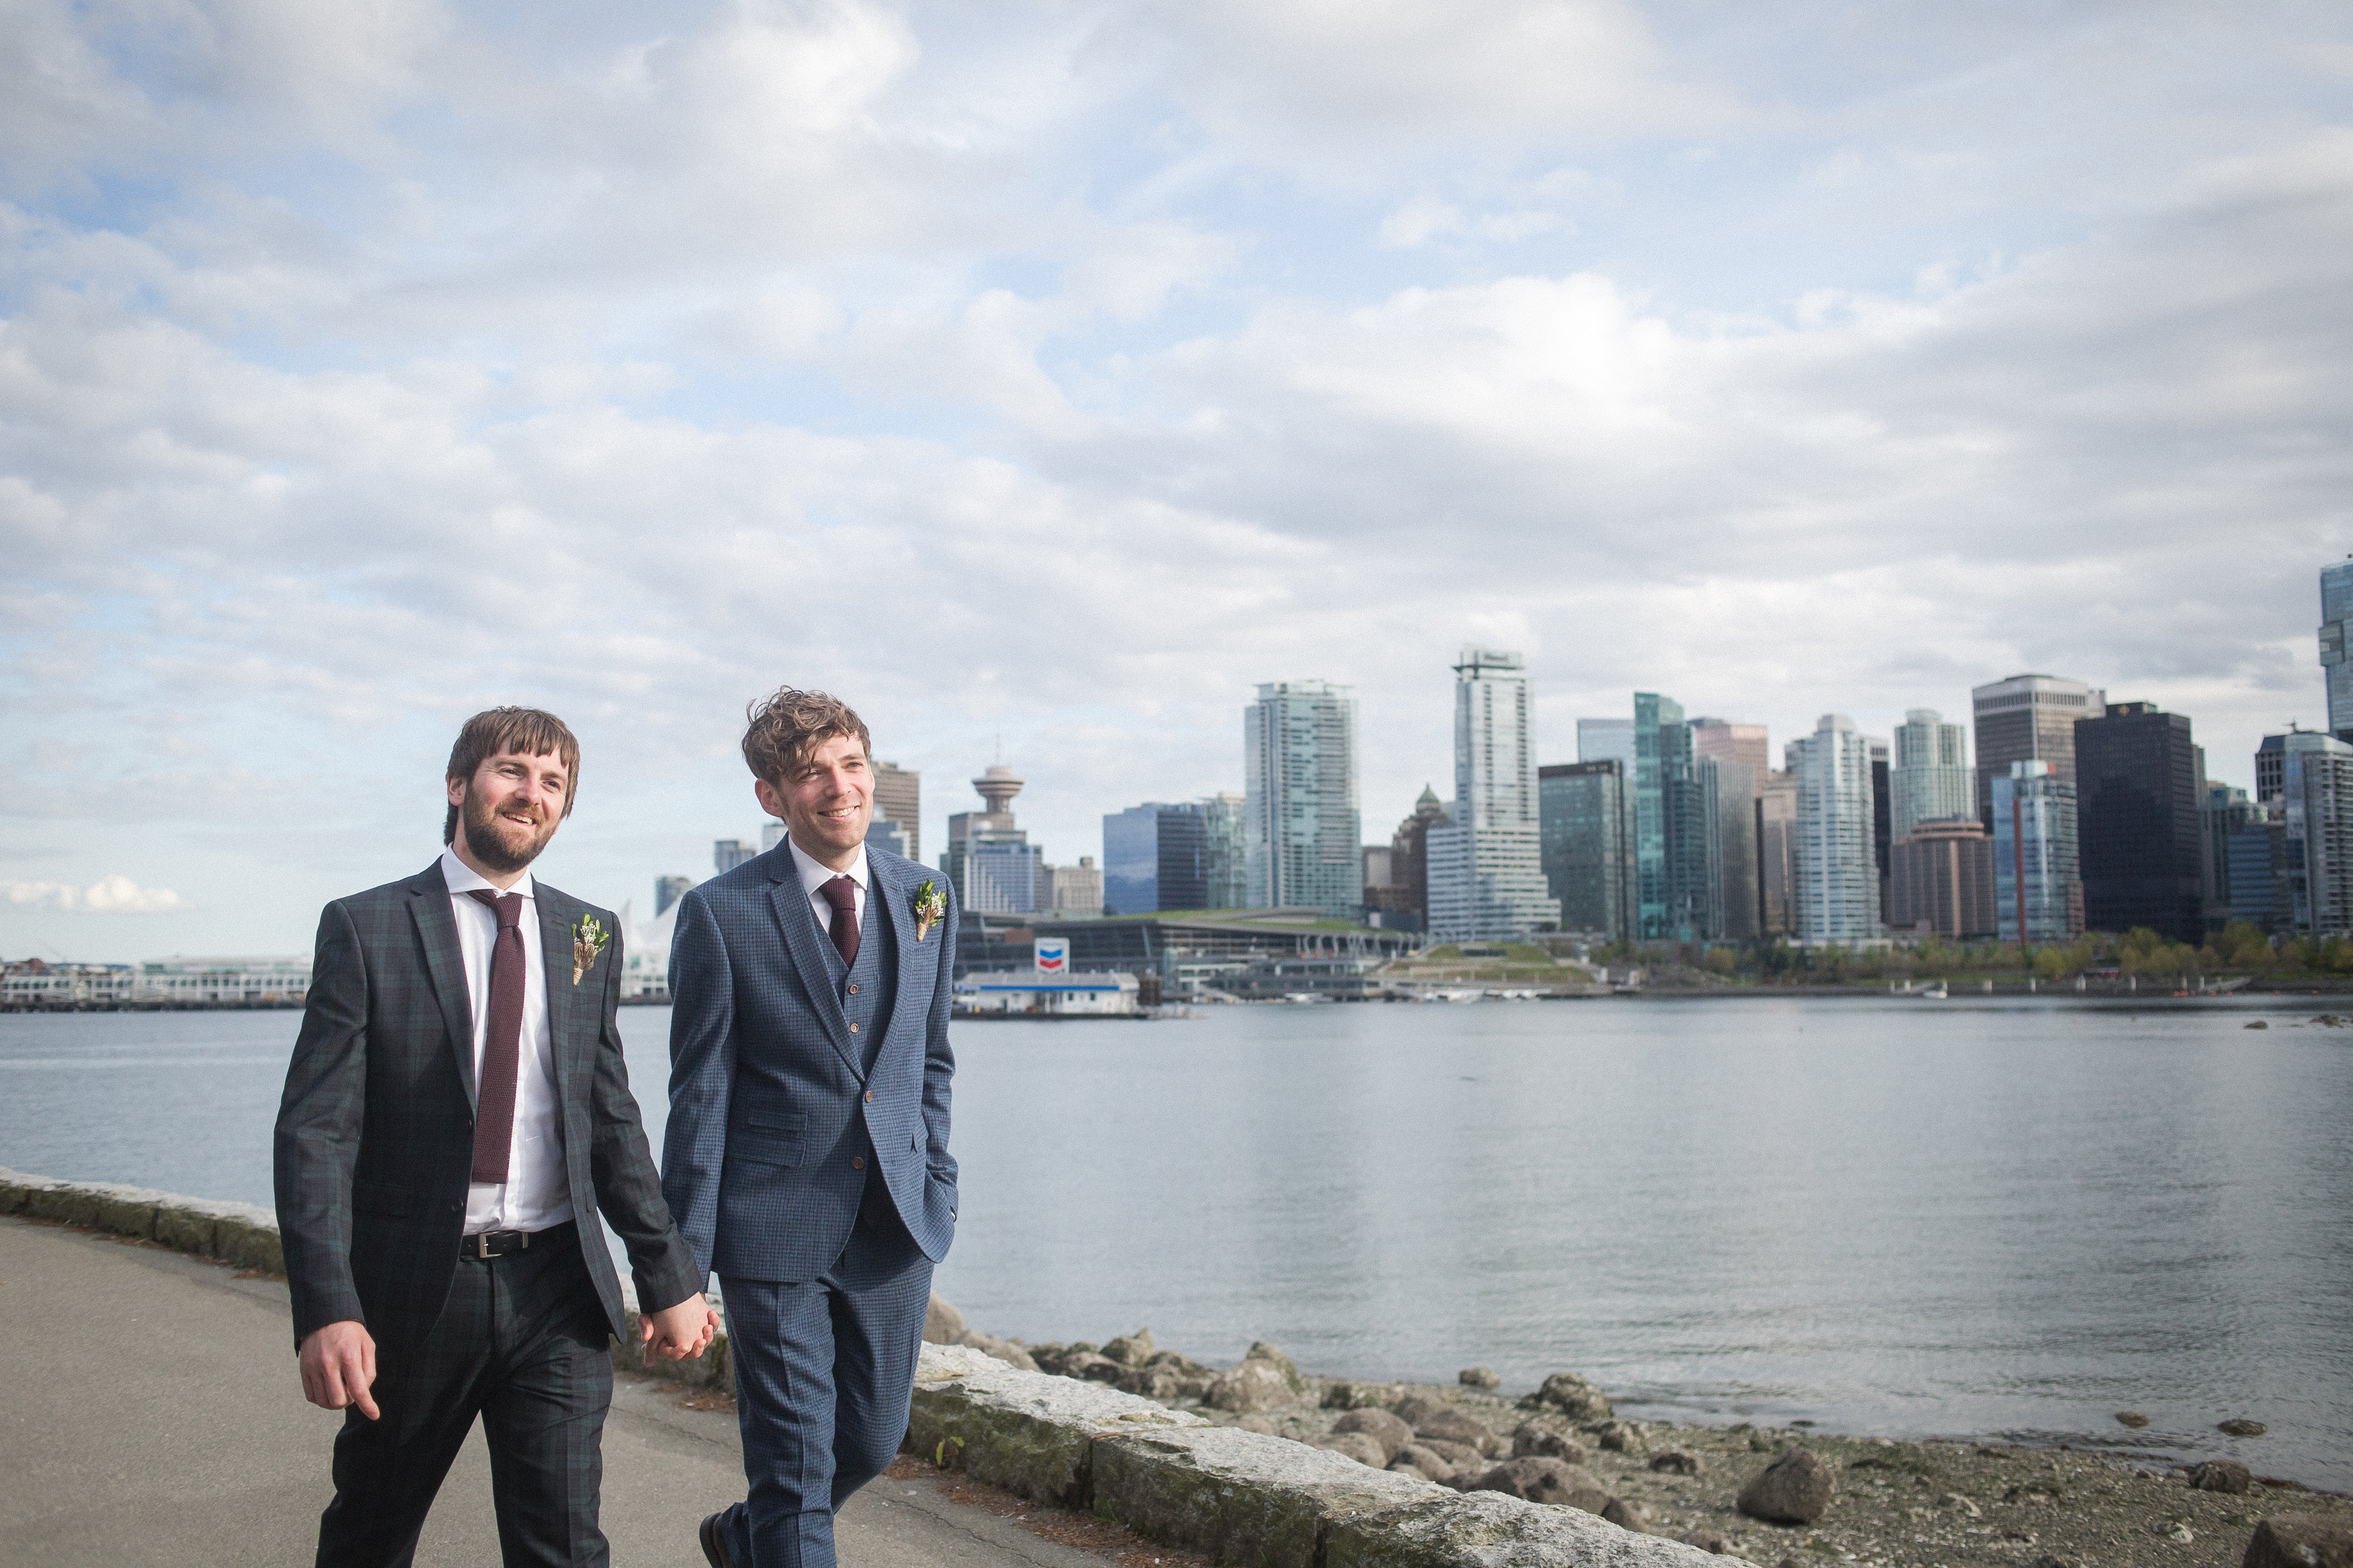 vancouver-gay-wedding-photographer-041